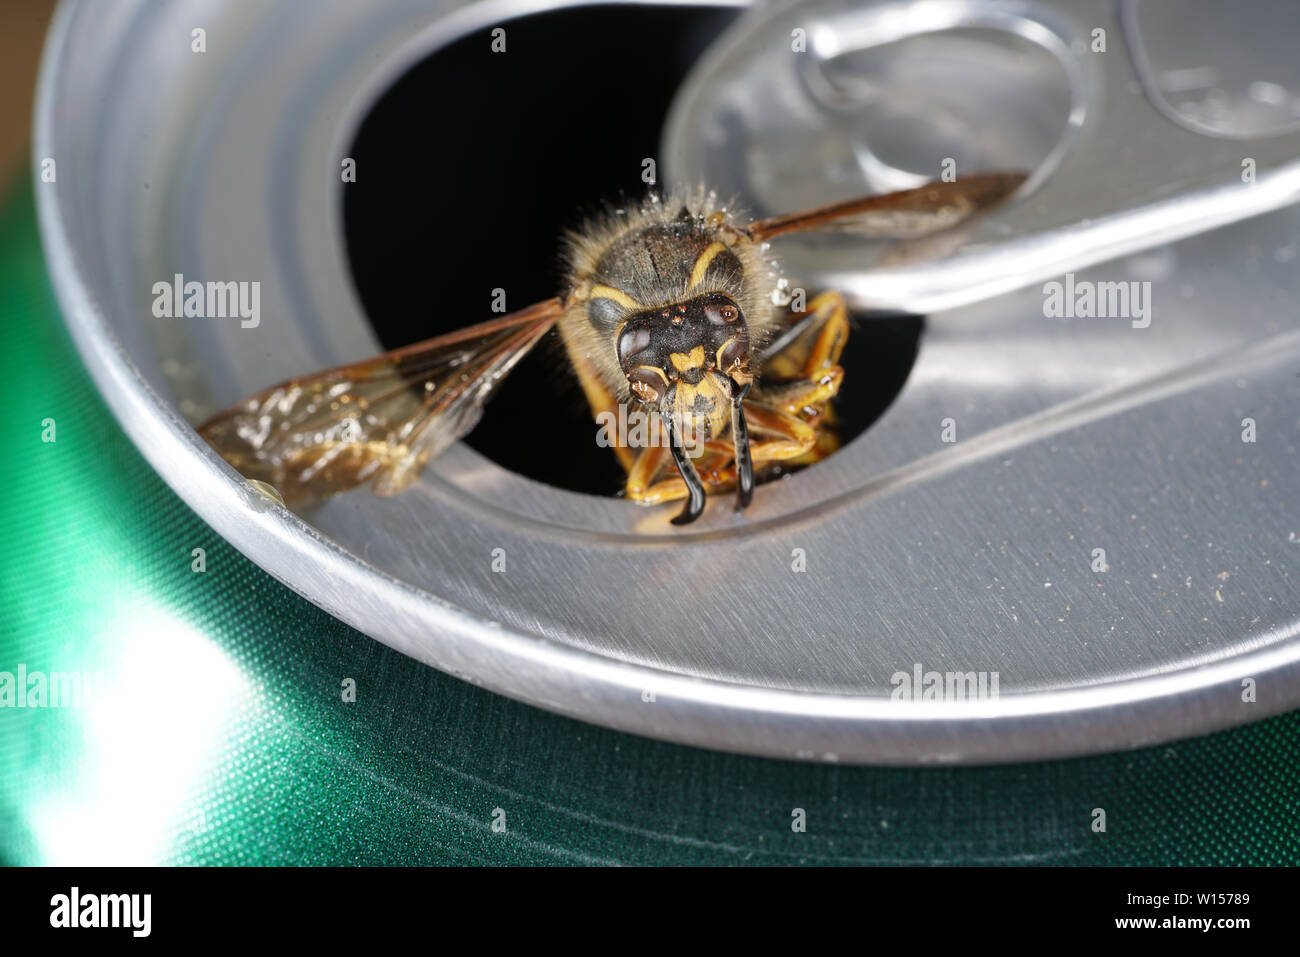 Bee in a soda can with macro shot photographed in best resolution - Stock Image